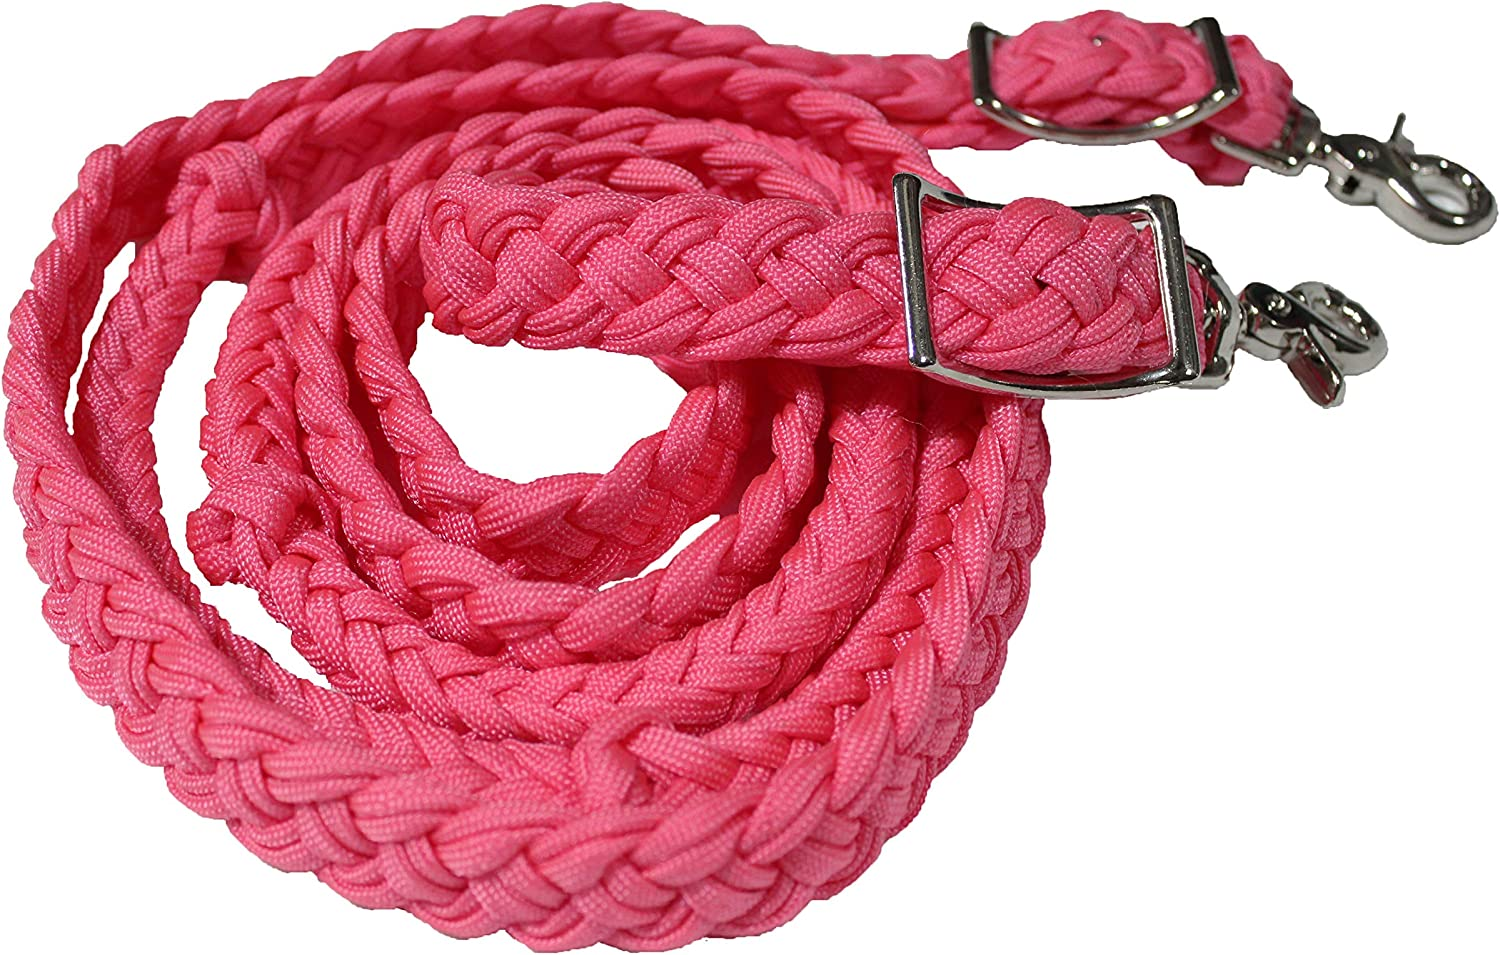 CHALLENGER Roping Raleigh Mall Knotted half Tack Western Horse Barrel Reins Nylon